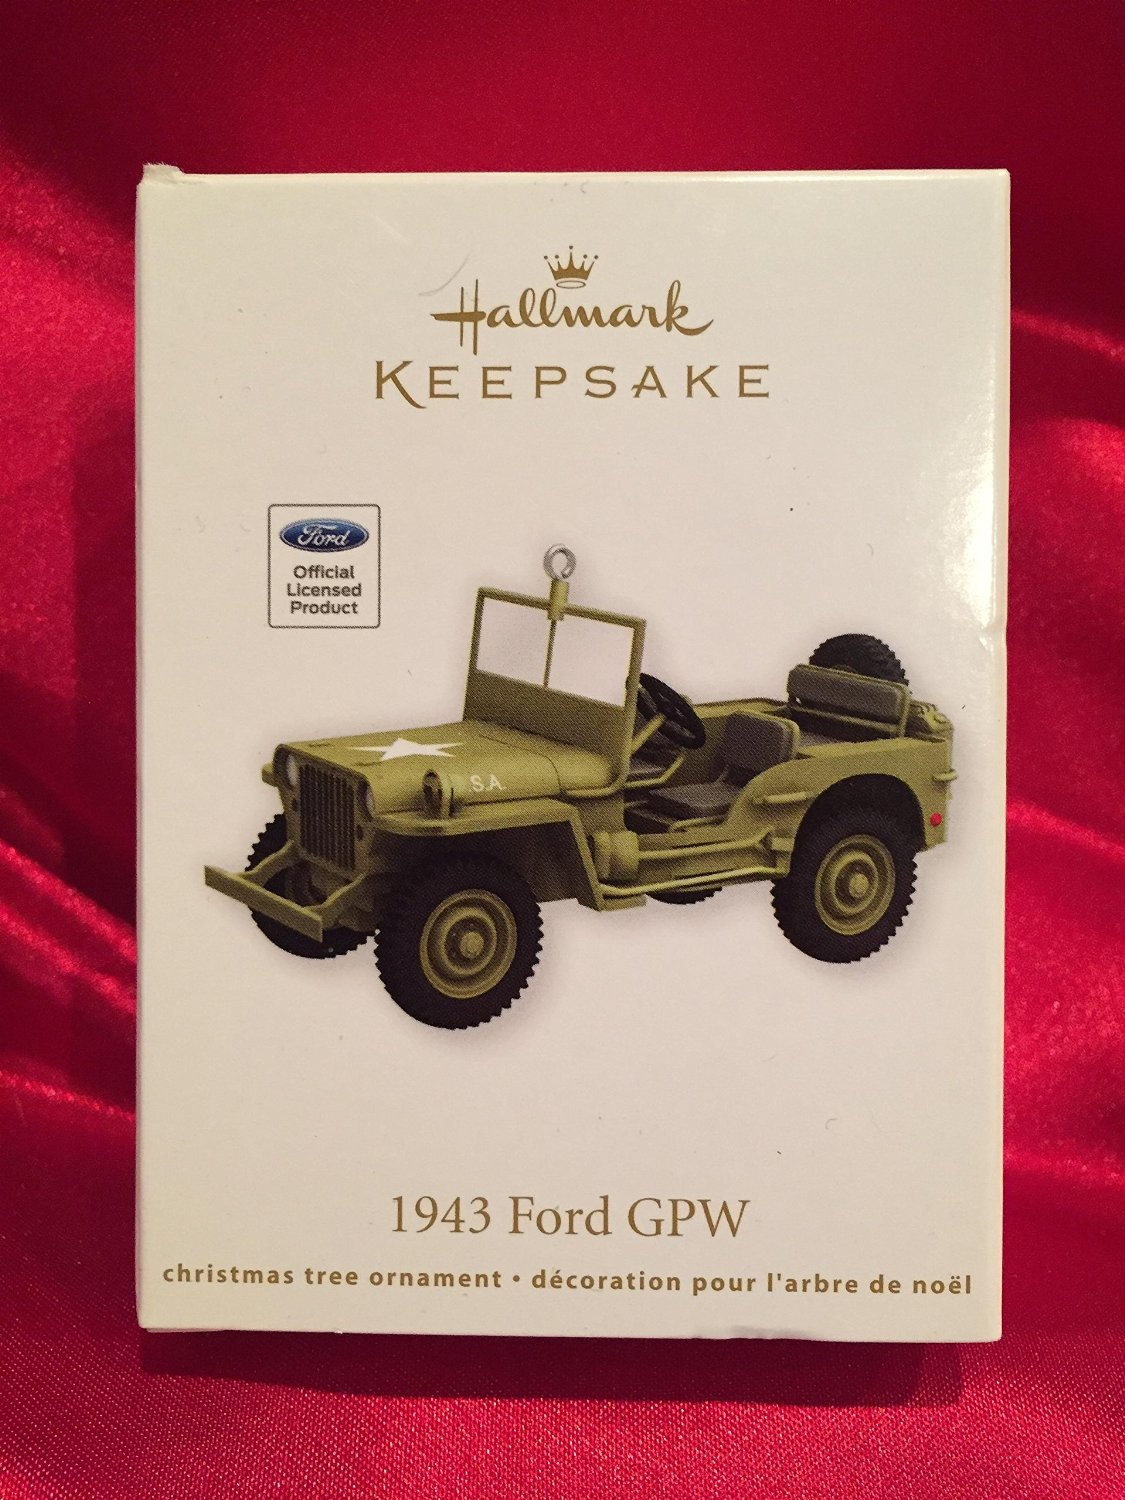 Jeep Christmas Ornament.Cheap Jeep Ornament Find Jeep Ornament Deals On Line At